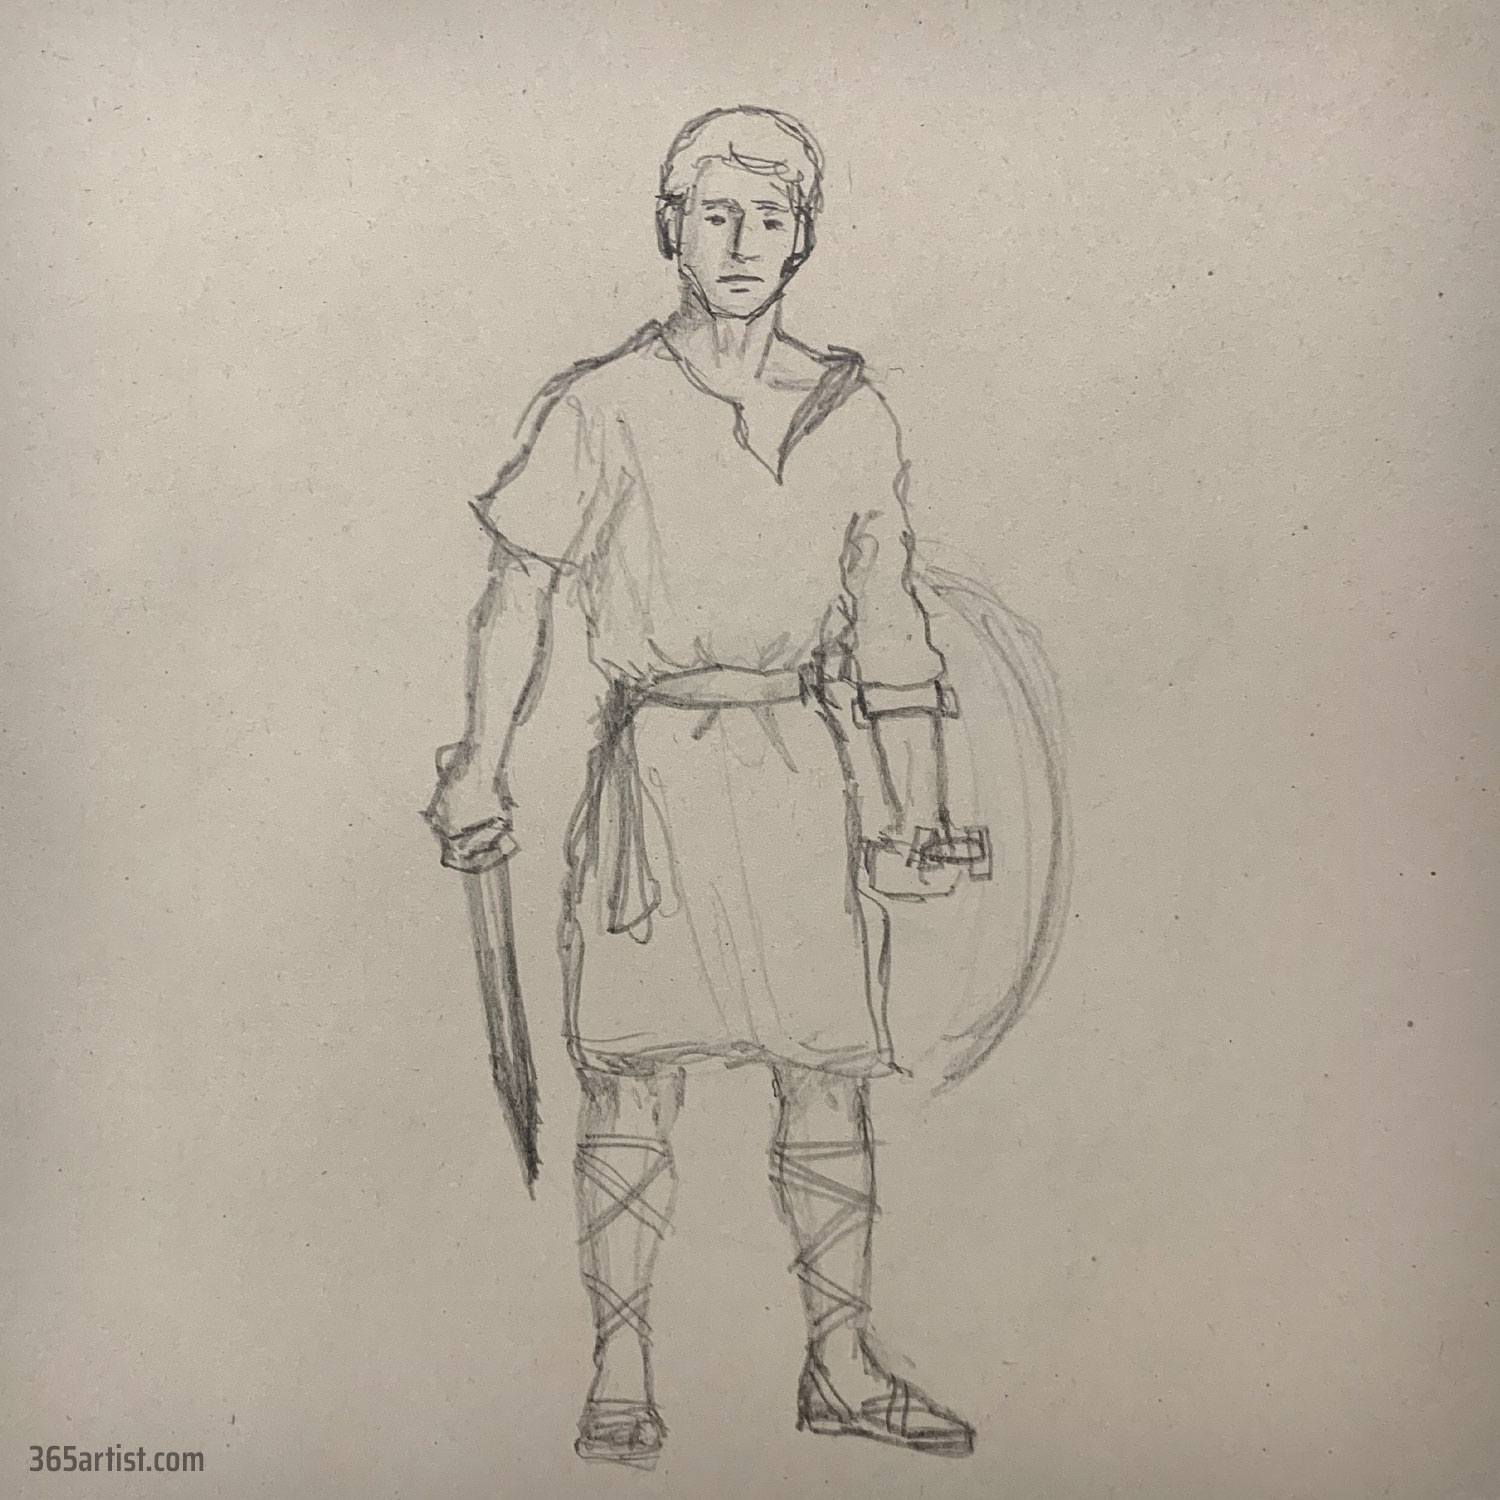 drawing of an ancient greek solider